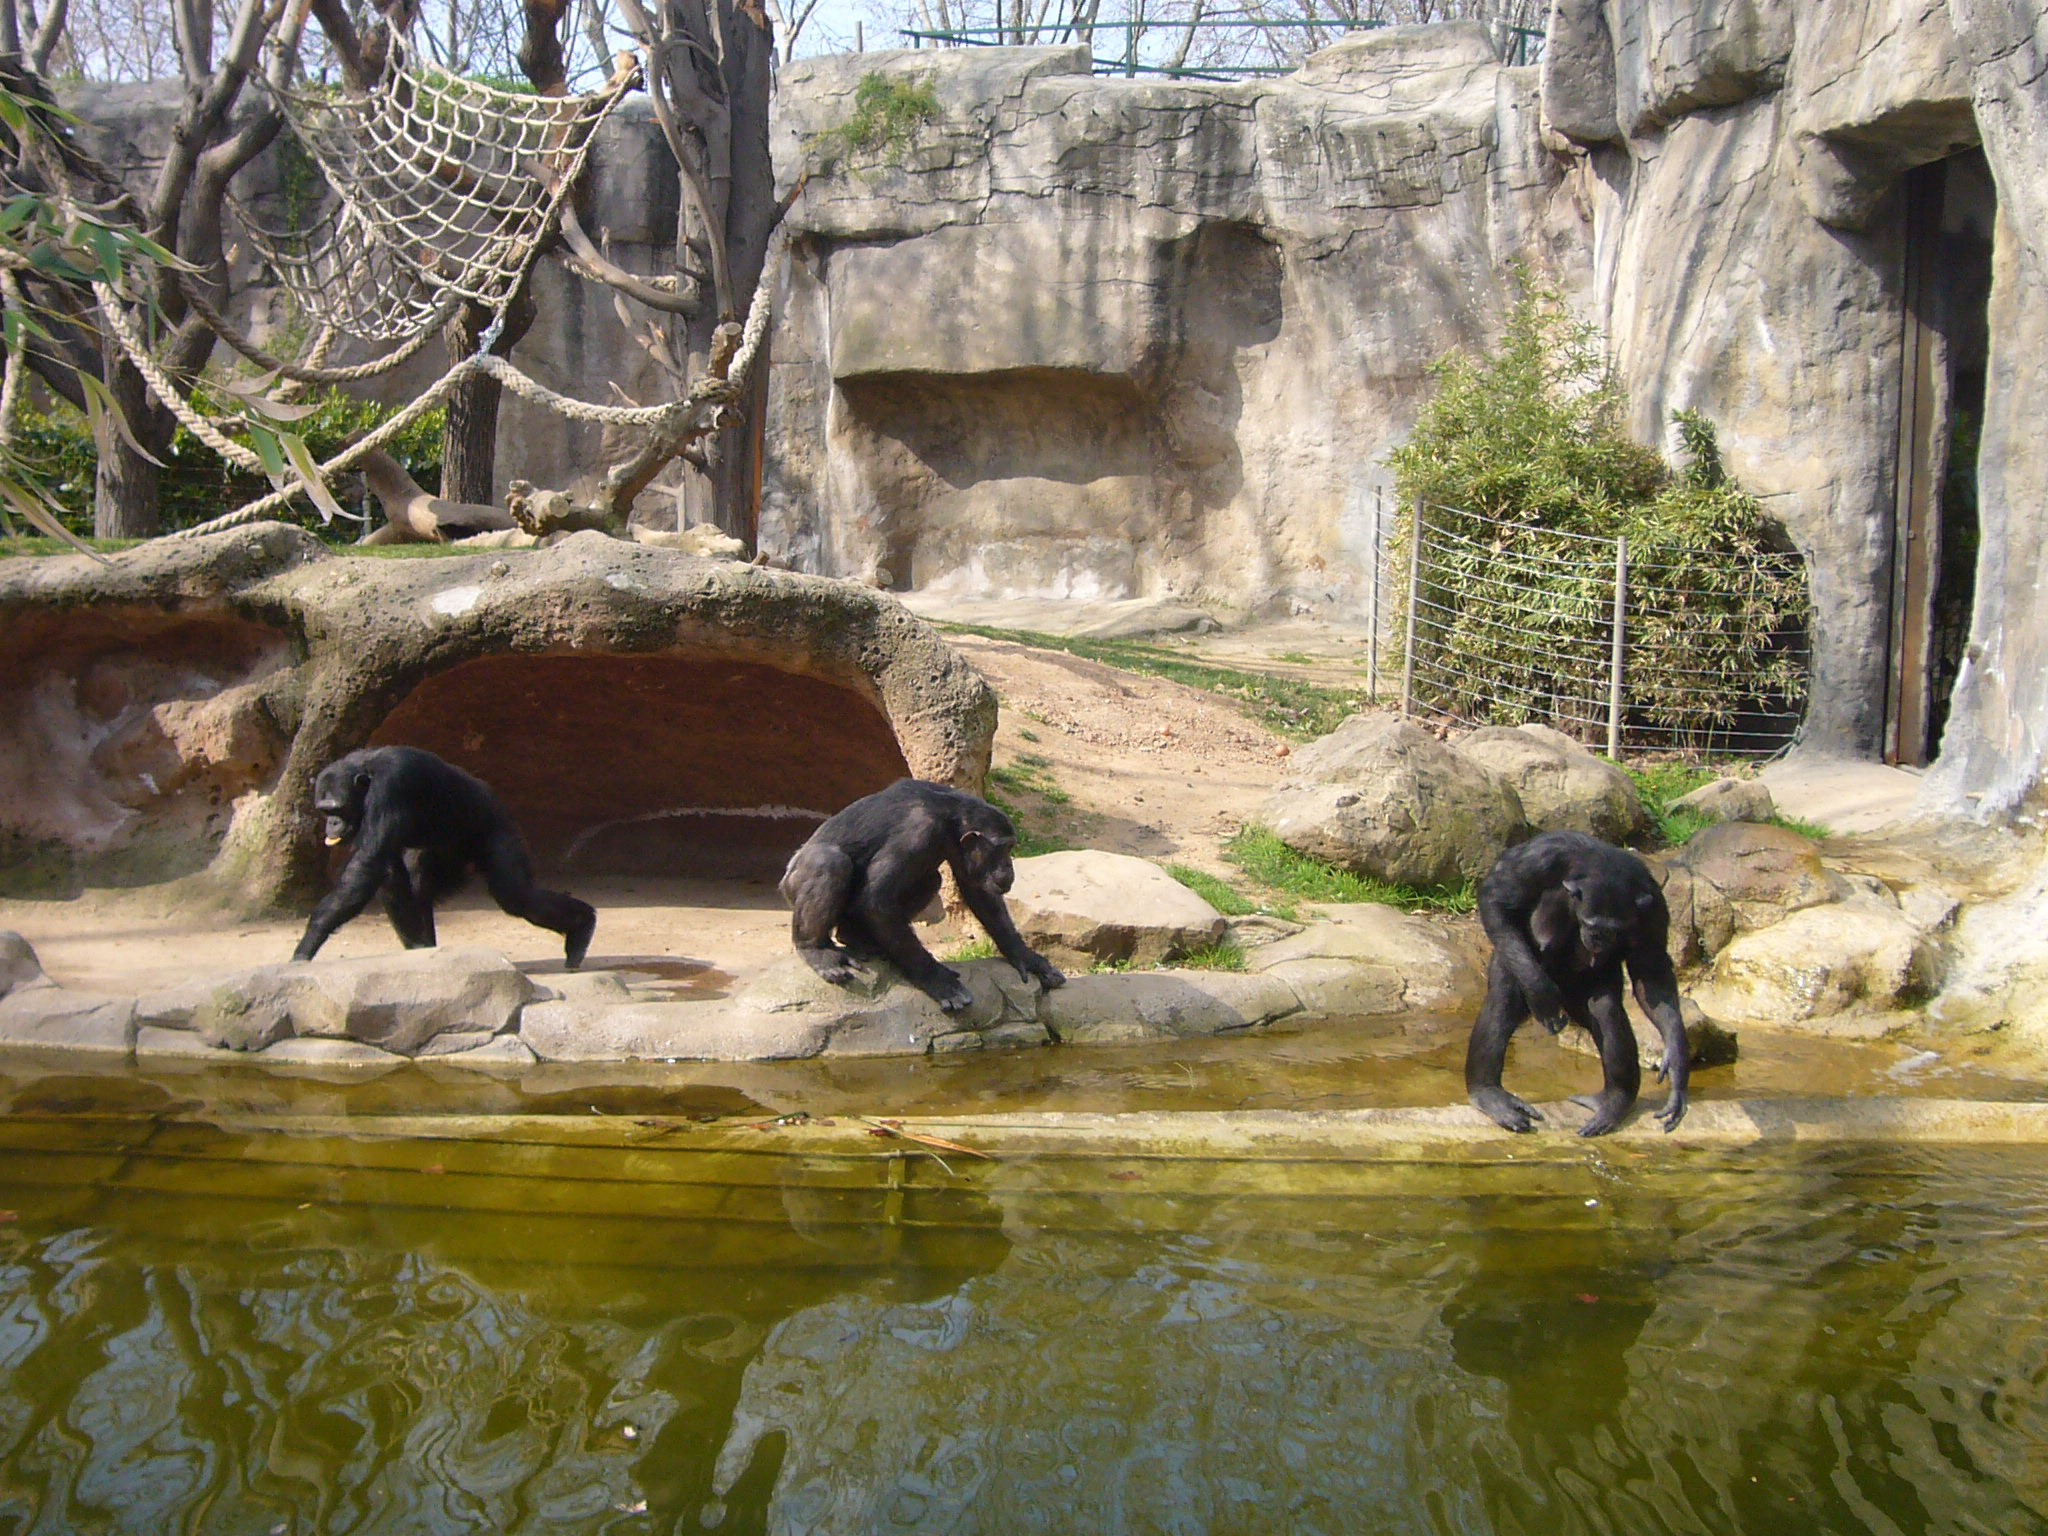 Chimps at Barcelona Zoo Zoo